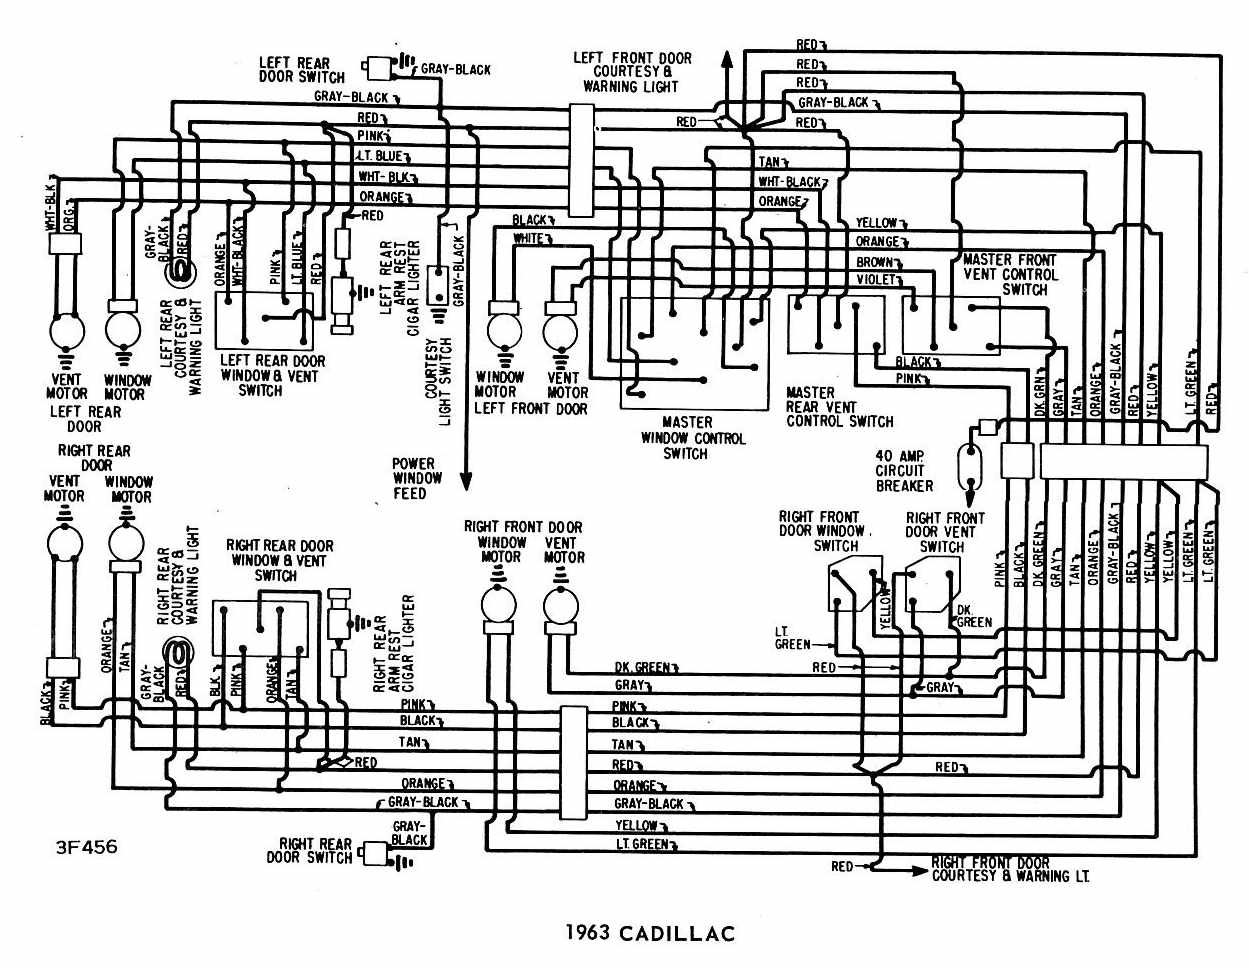 Cadillac+1963+Windows+Wiring+Diagram cadillac 1963 windows wiring diagram all about wiring diagrams cadillac wiring diagrams at bayanpartner.co